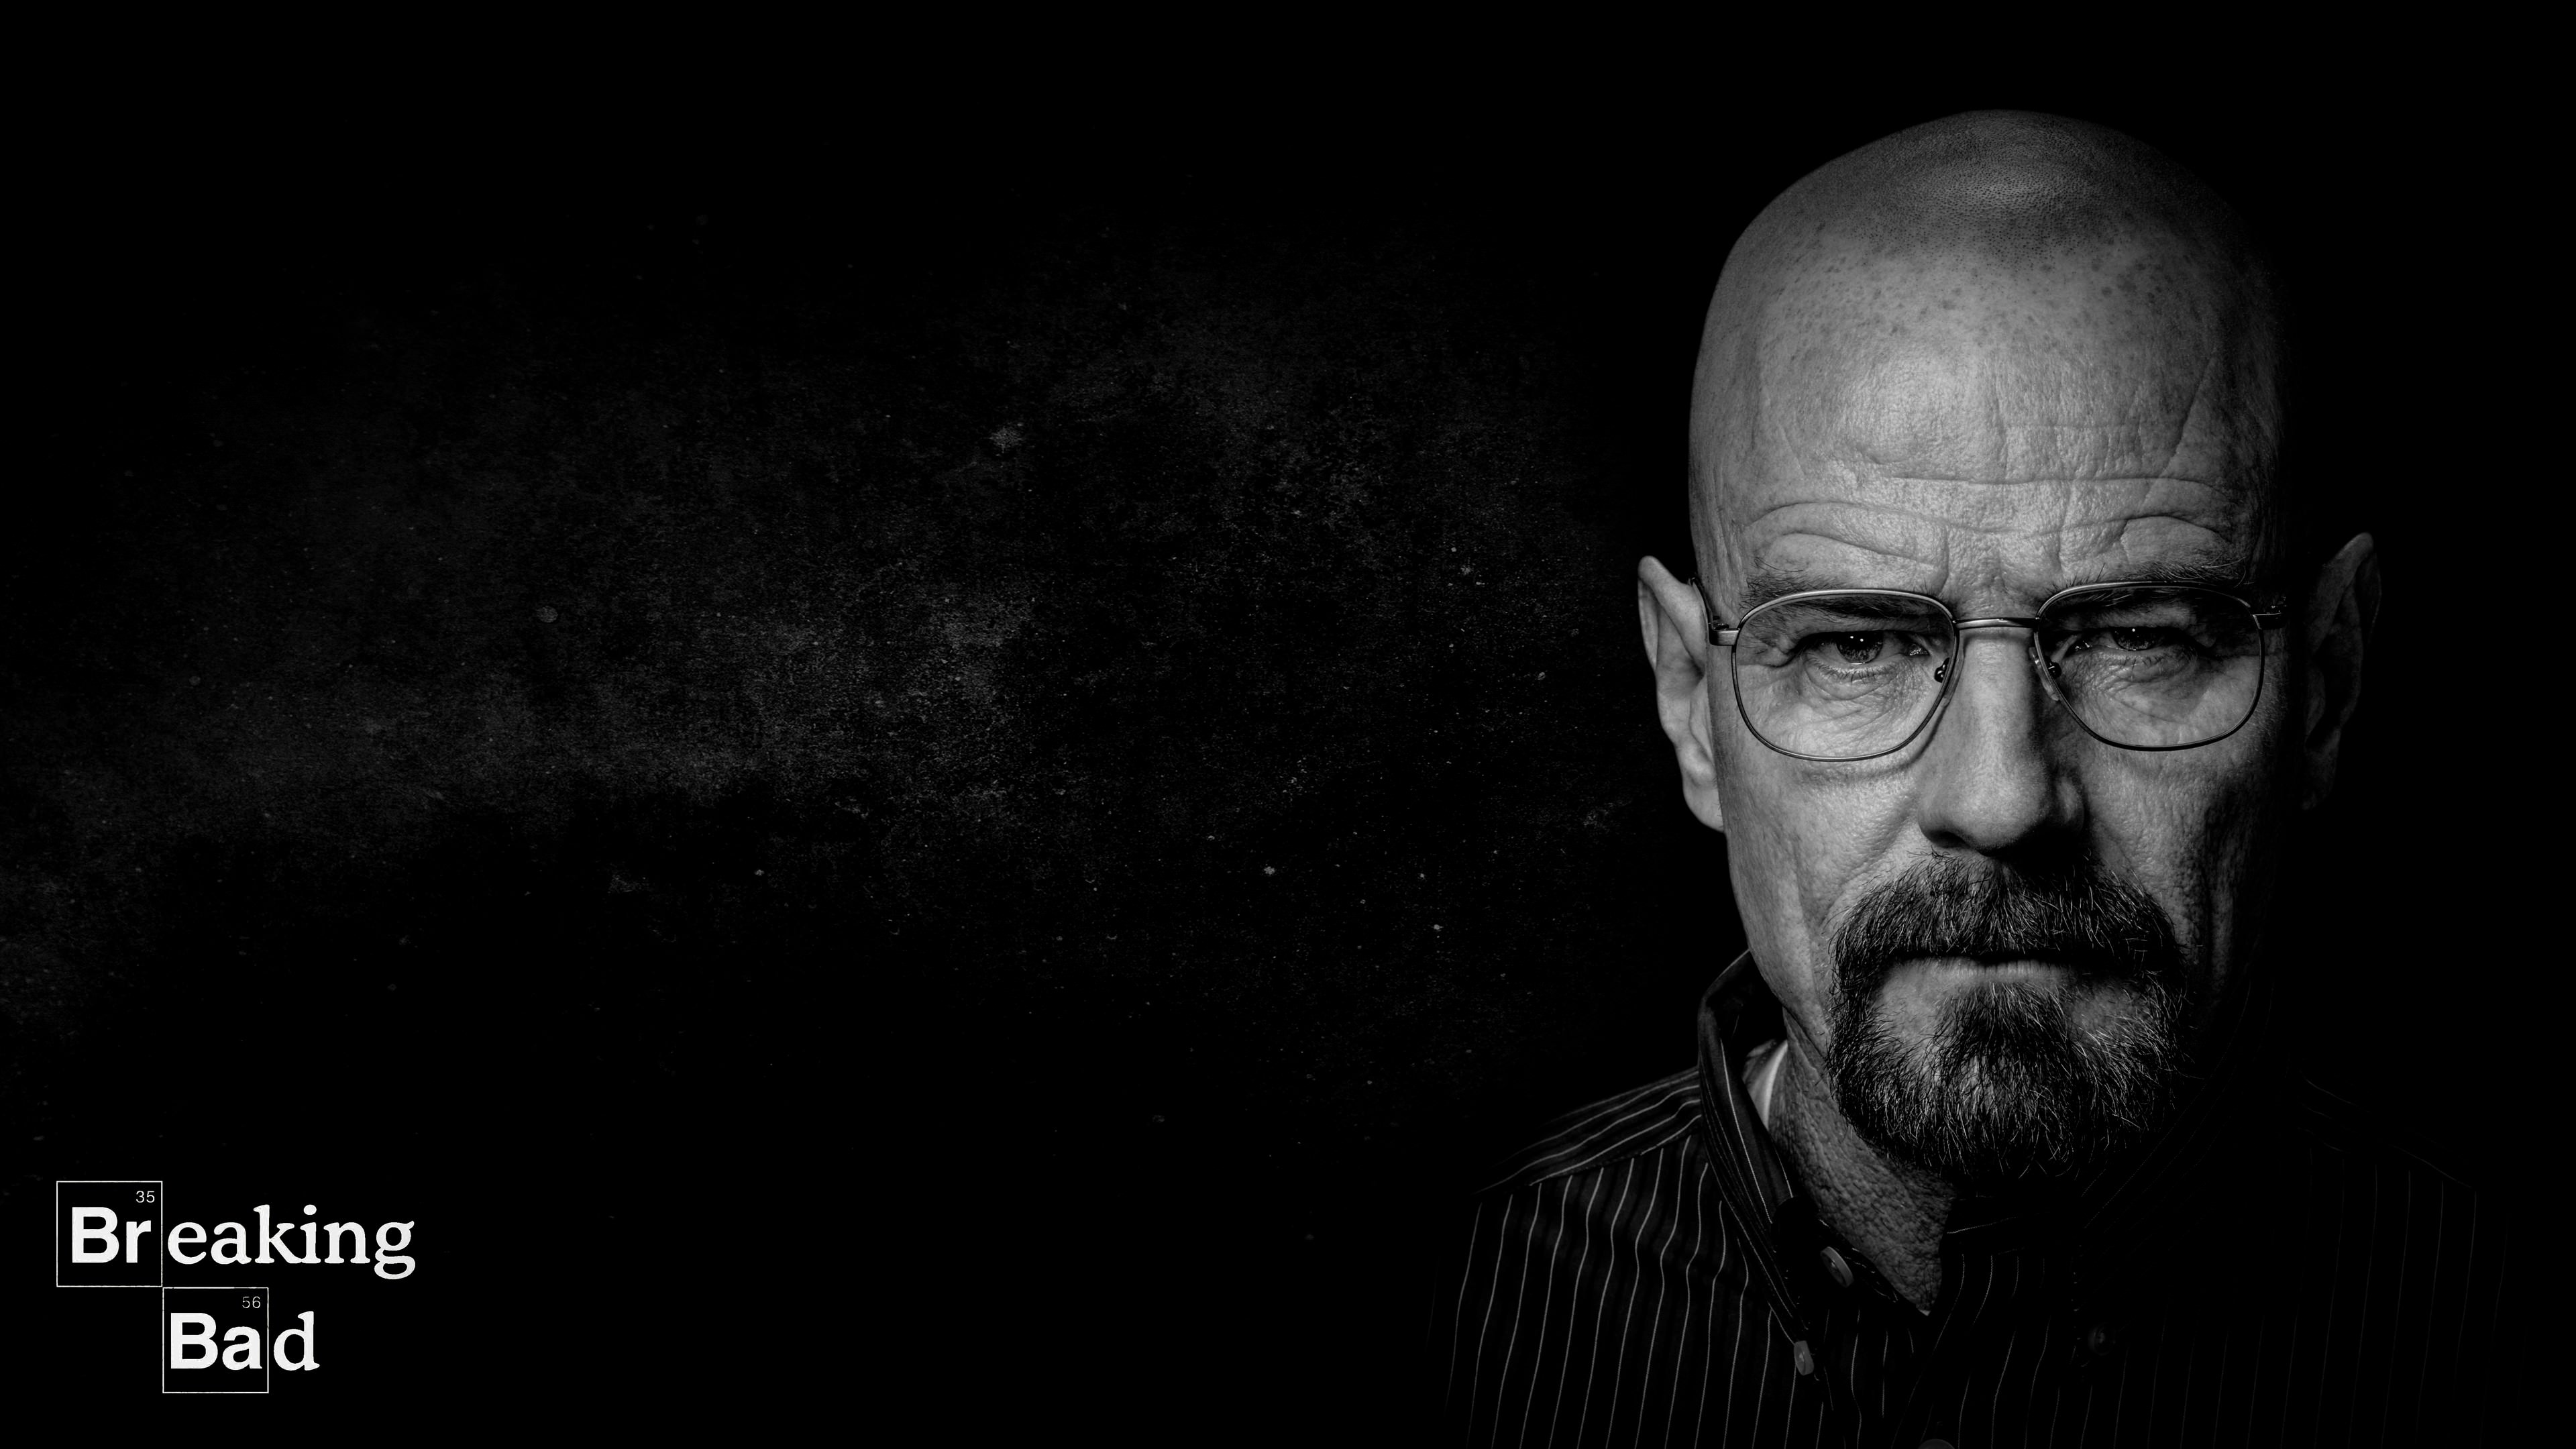 Breaking Bad - Walter White - Black and White wallpaper